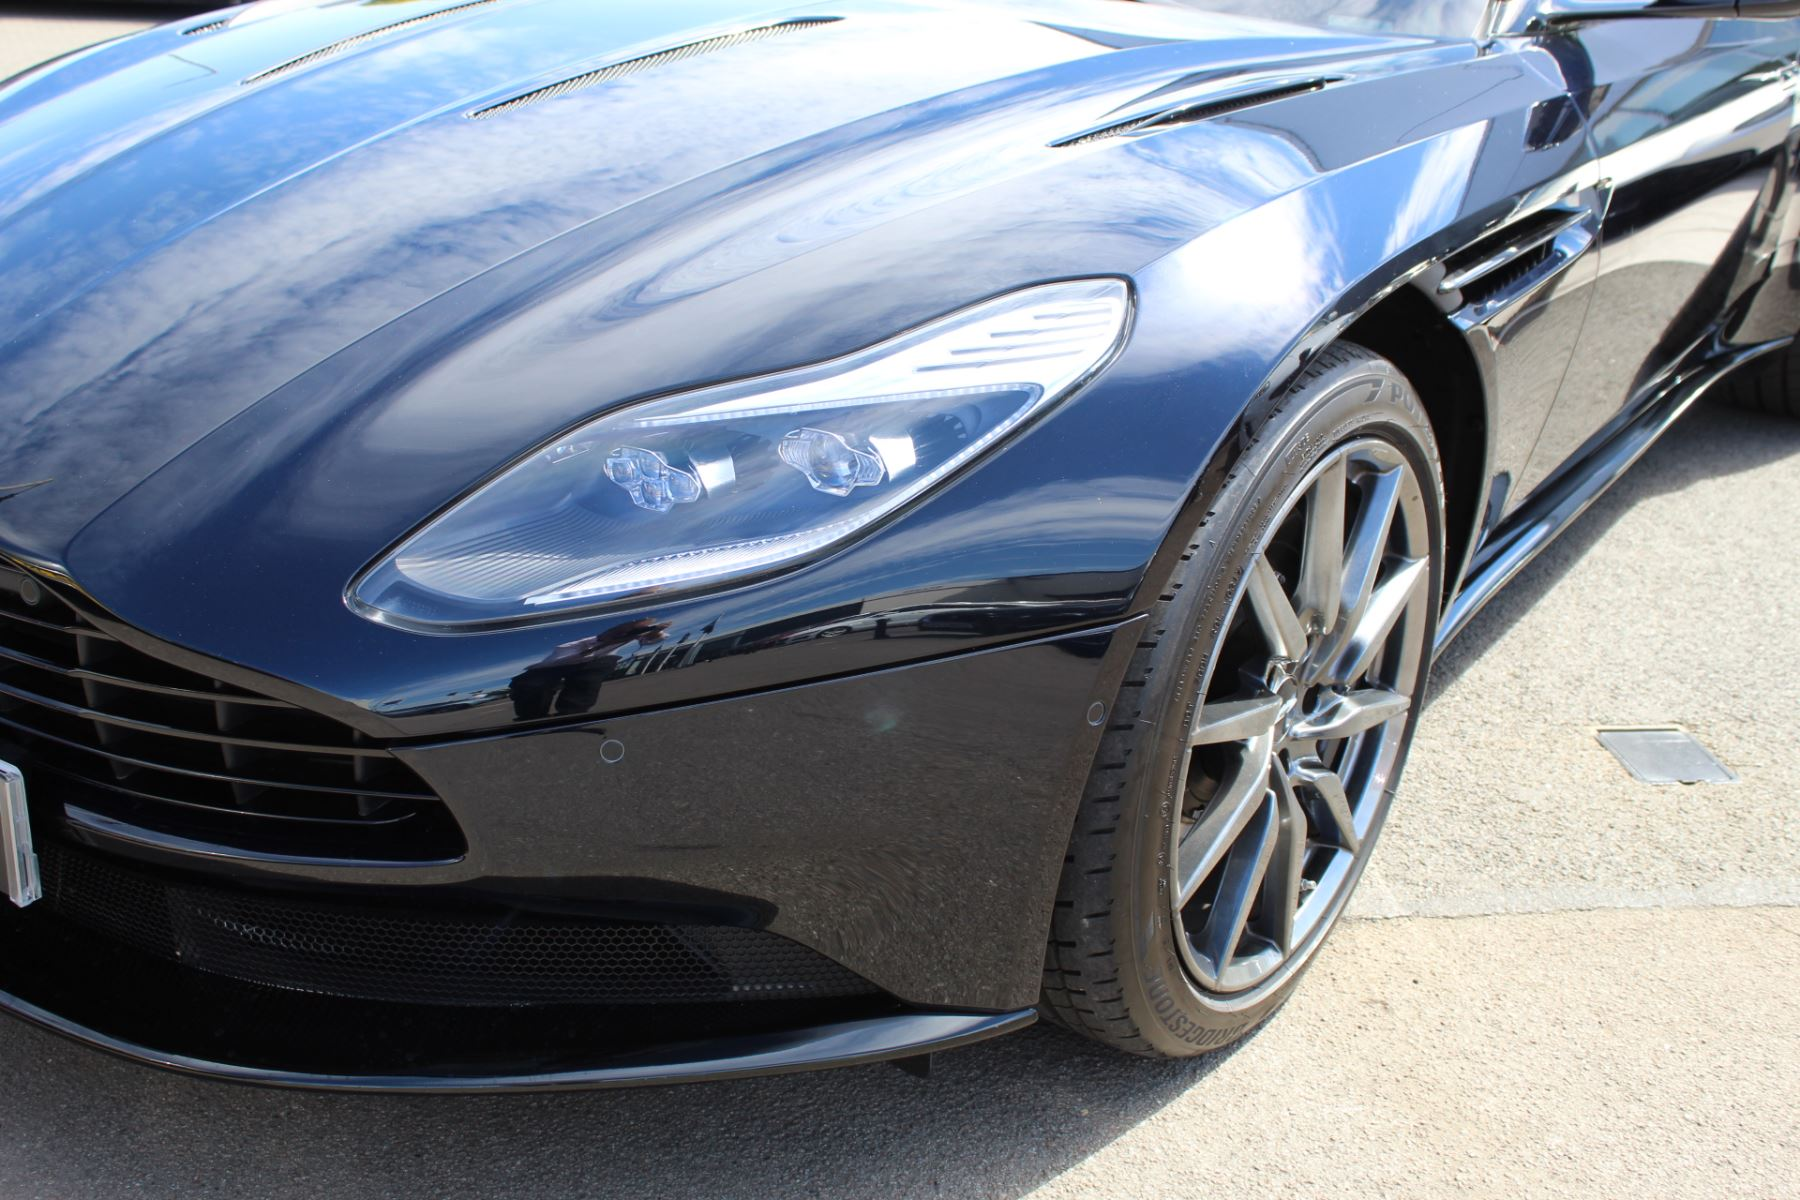 Aston Martin DB11 V12 2dr Touchtronic image 5